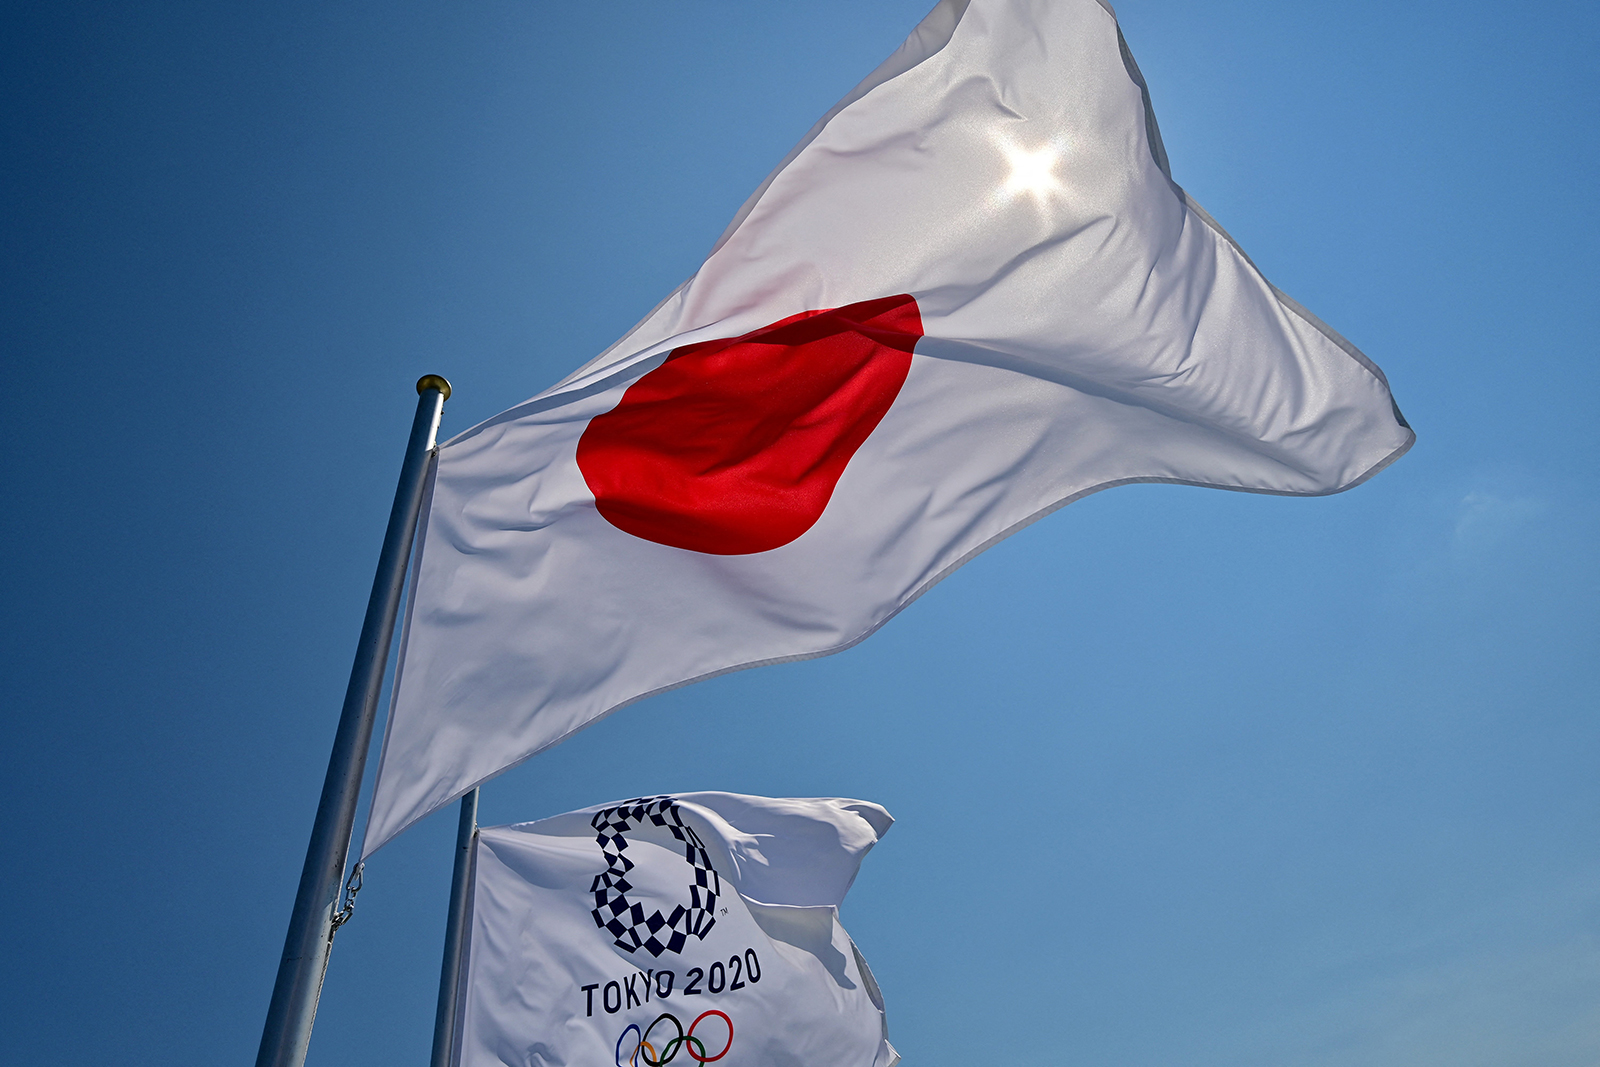 Japanese and Tokyo 2020 Olympic flags wave at the Aomi Urban Sports Park ahead of the Olympic Games in Tokyo on July 22.